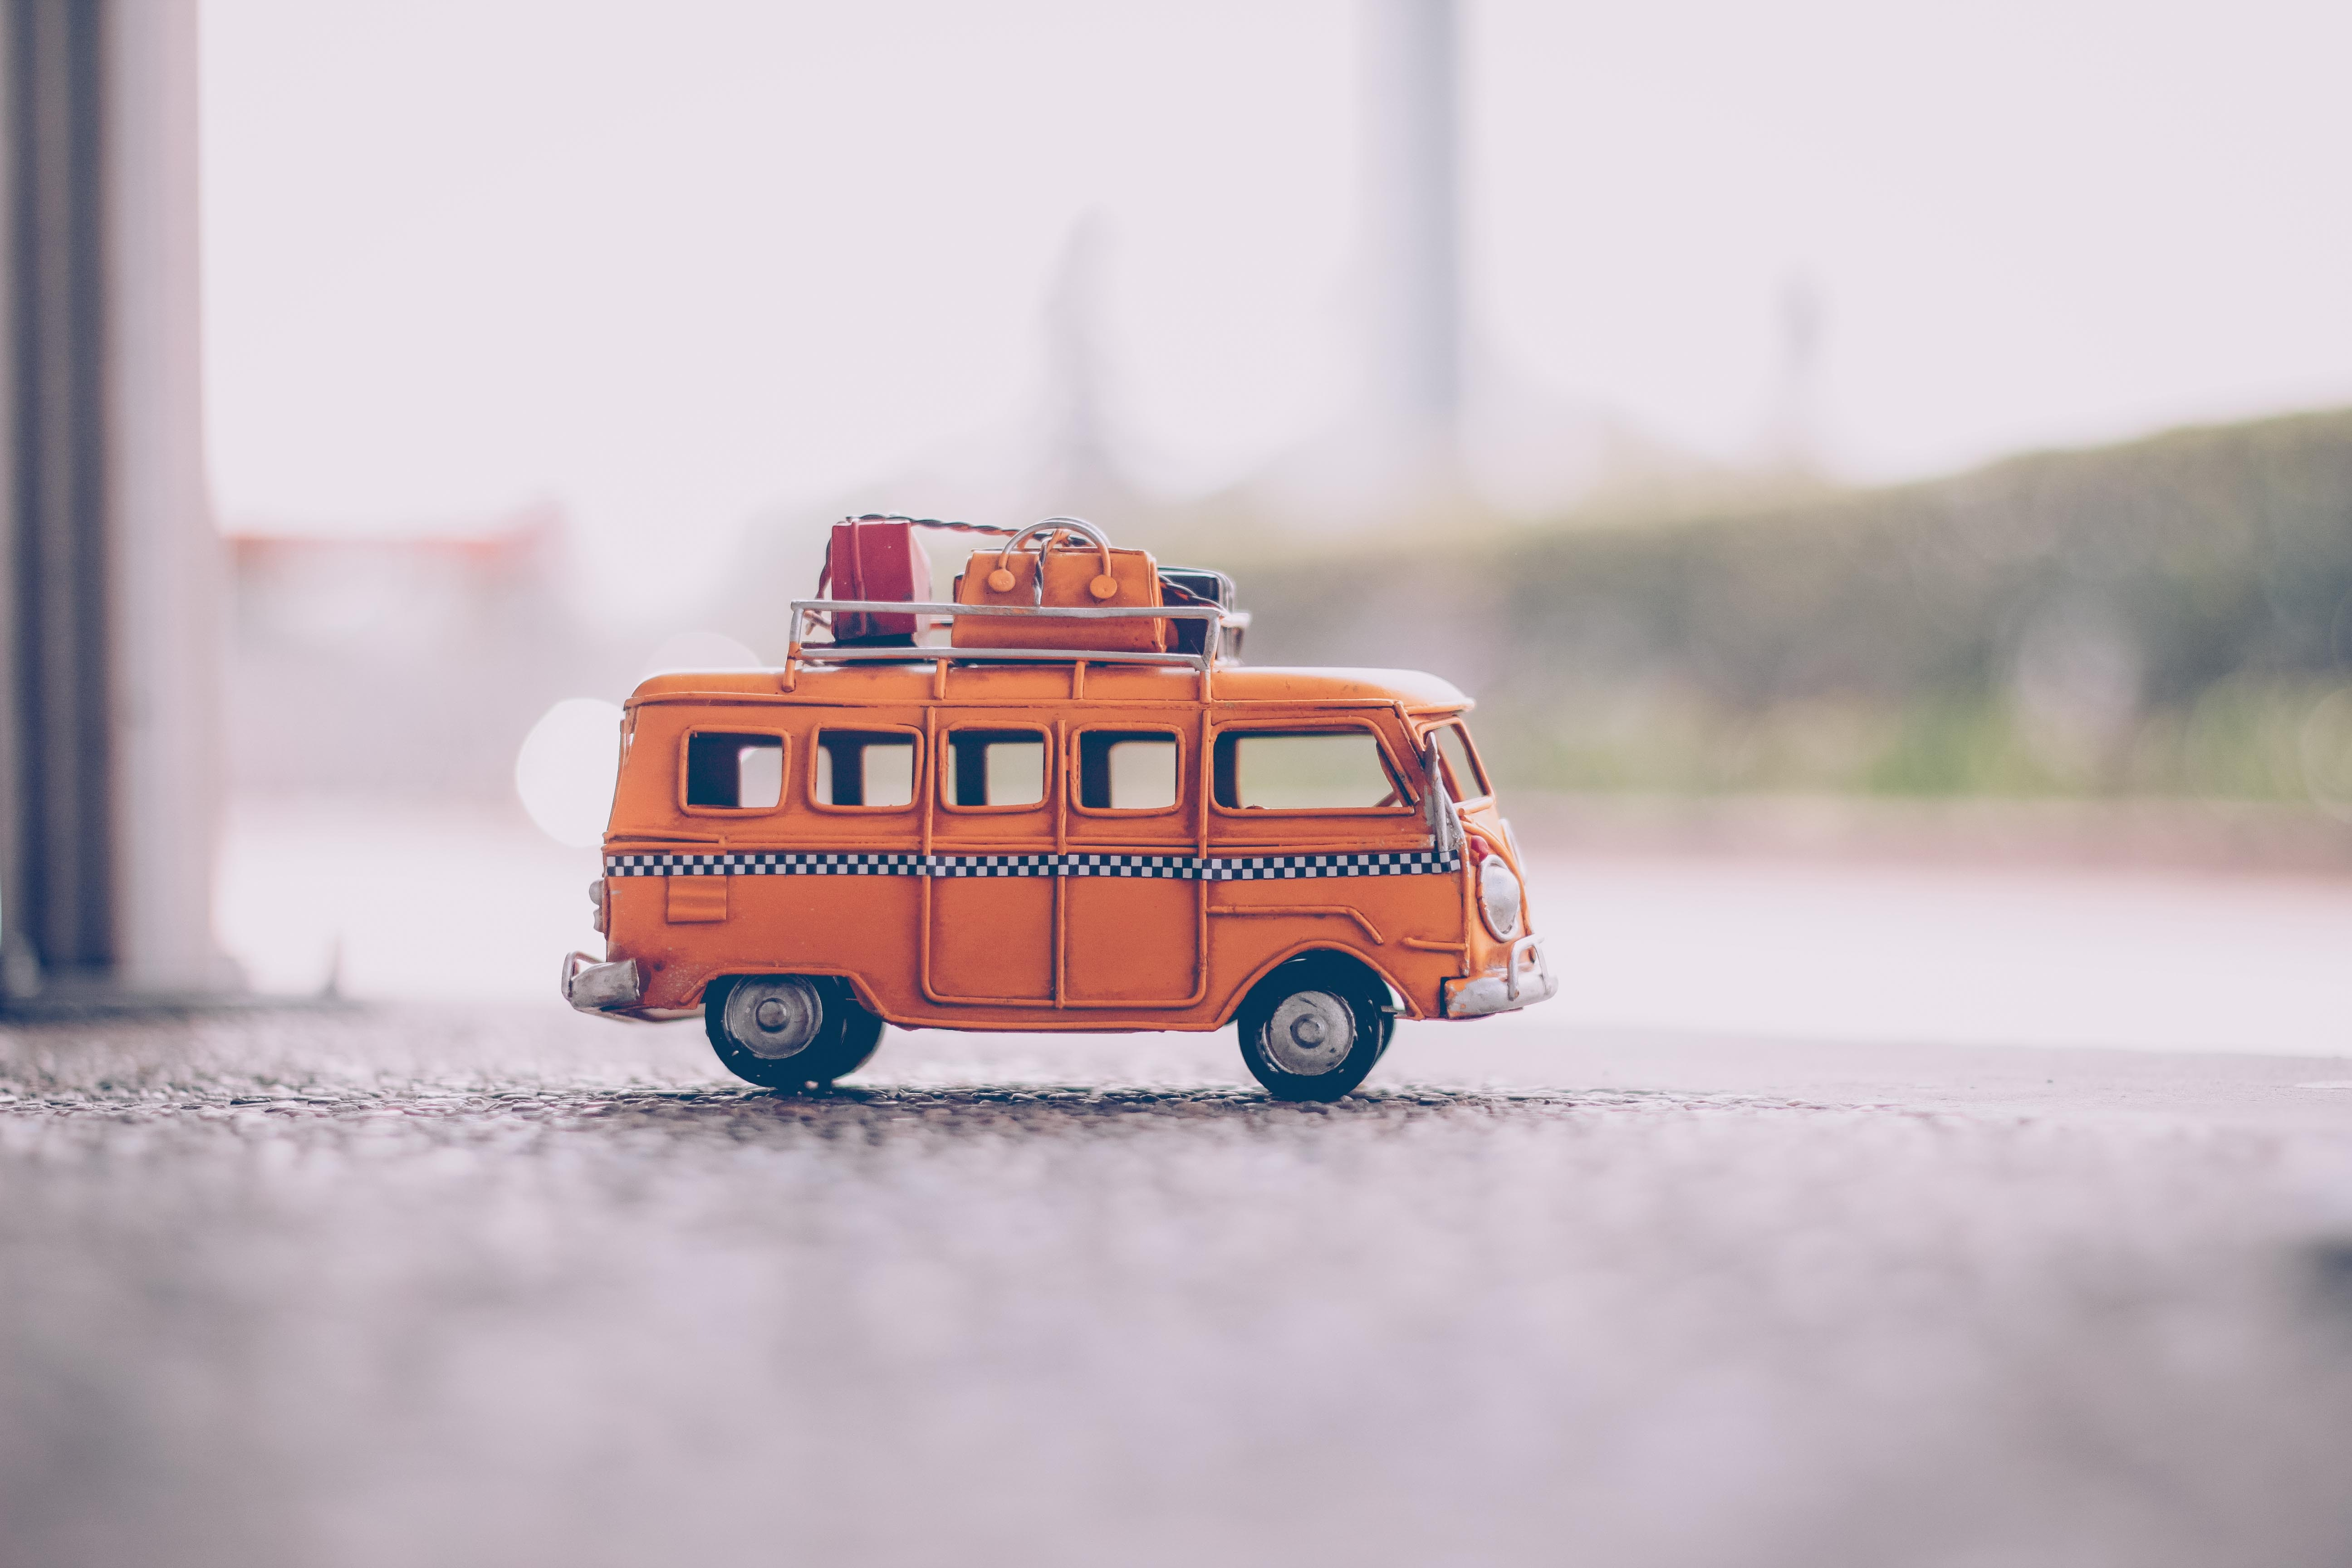 don't fall behind in your learning as a social media digital agency. run up and try to catch the bus!